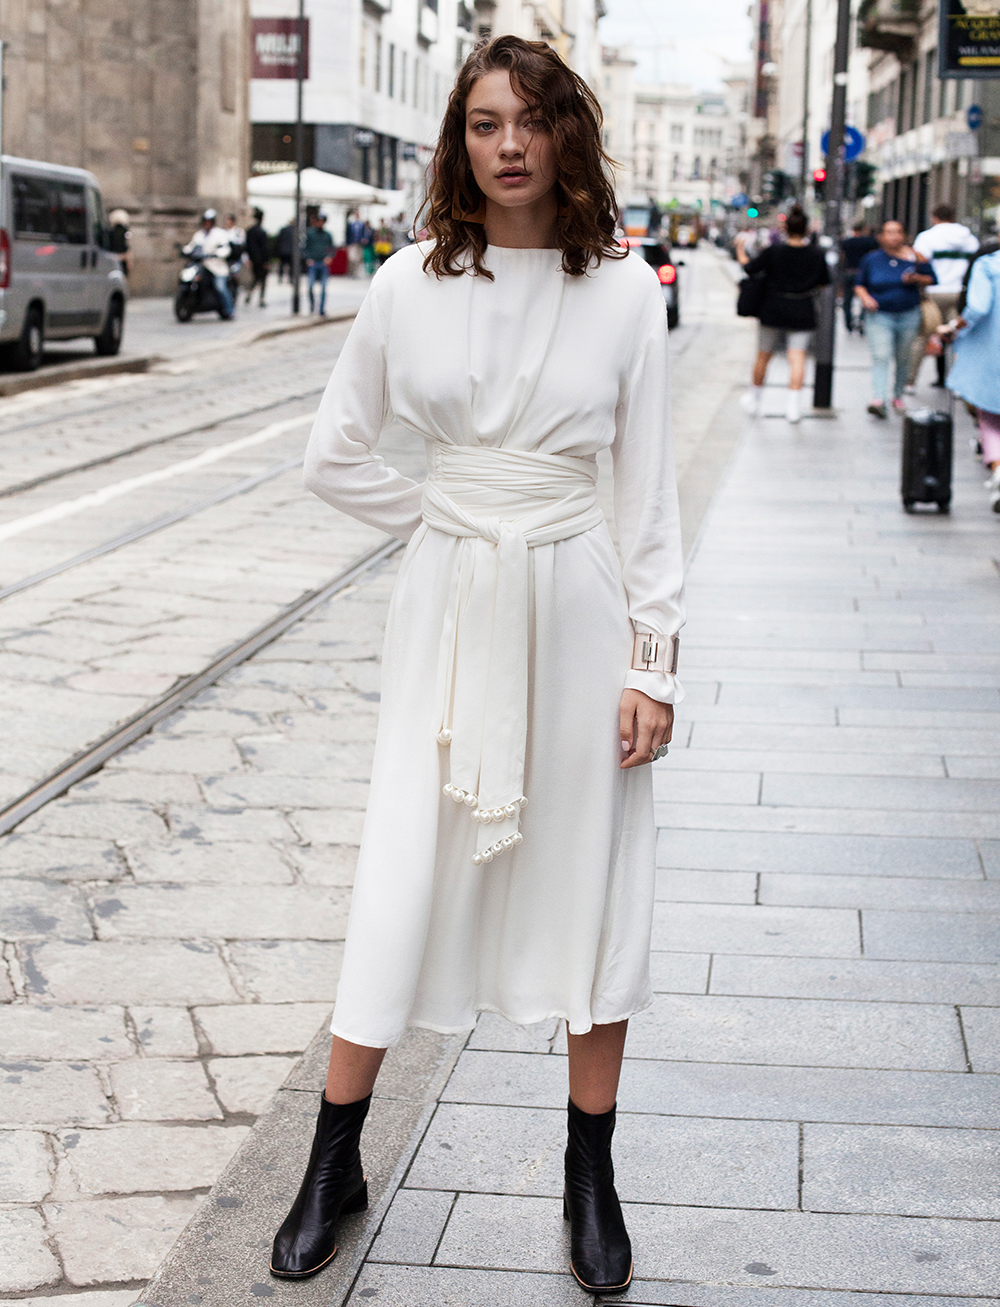 Kaleida Dress - White by Manurí on curated-crowd.com